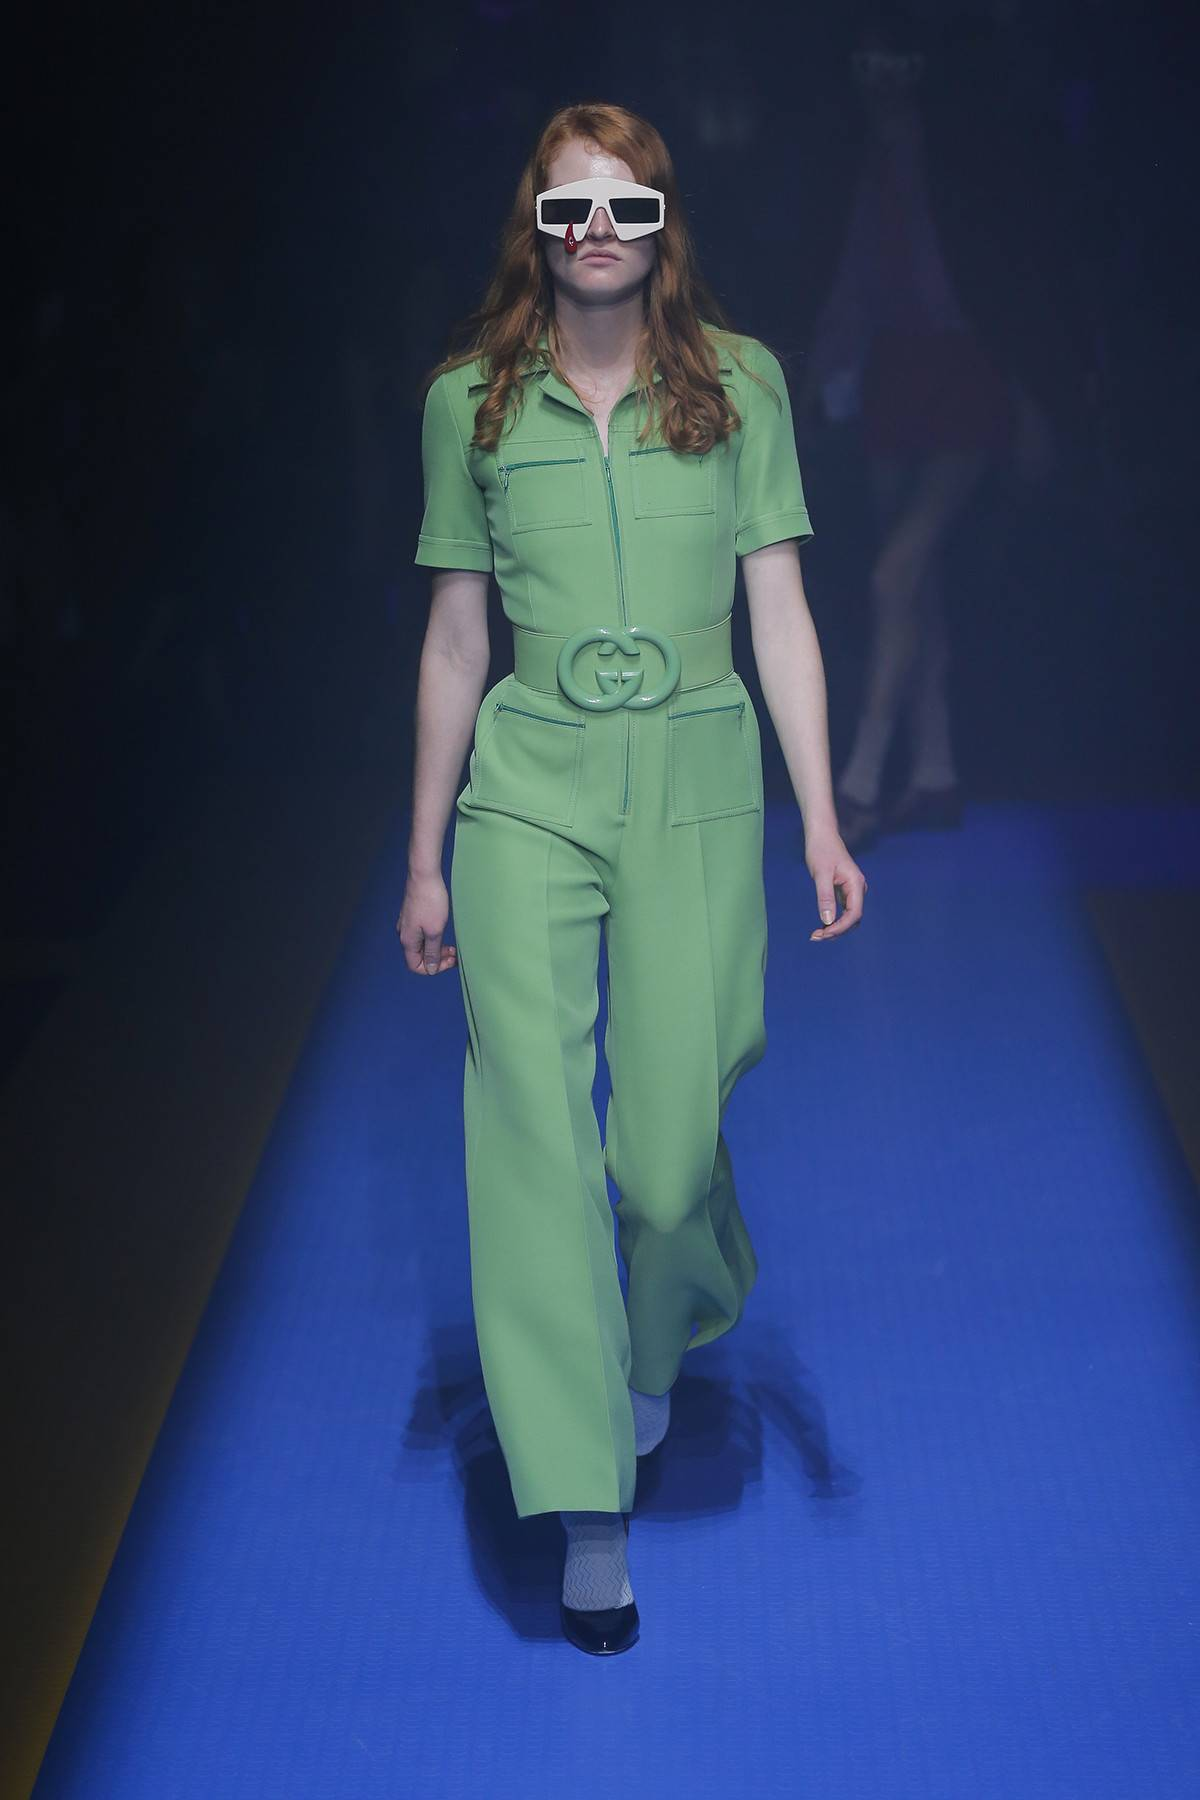 Gucci Spring Summer 2018 - How to Style a Jumpsuit - Source Gucci - gucci jumpsuits - solid colored jumpsuits - green jumpsuits